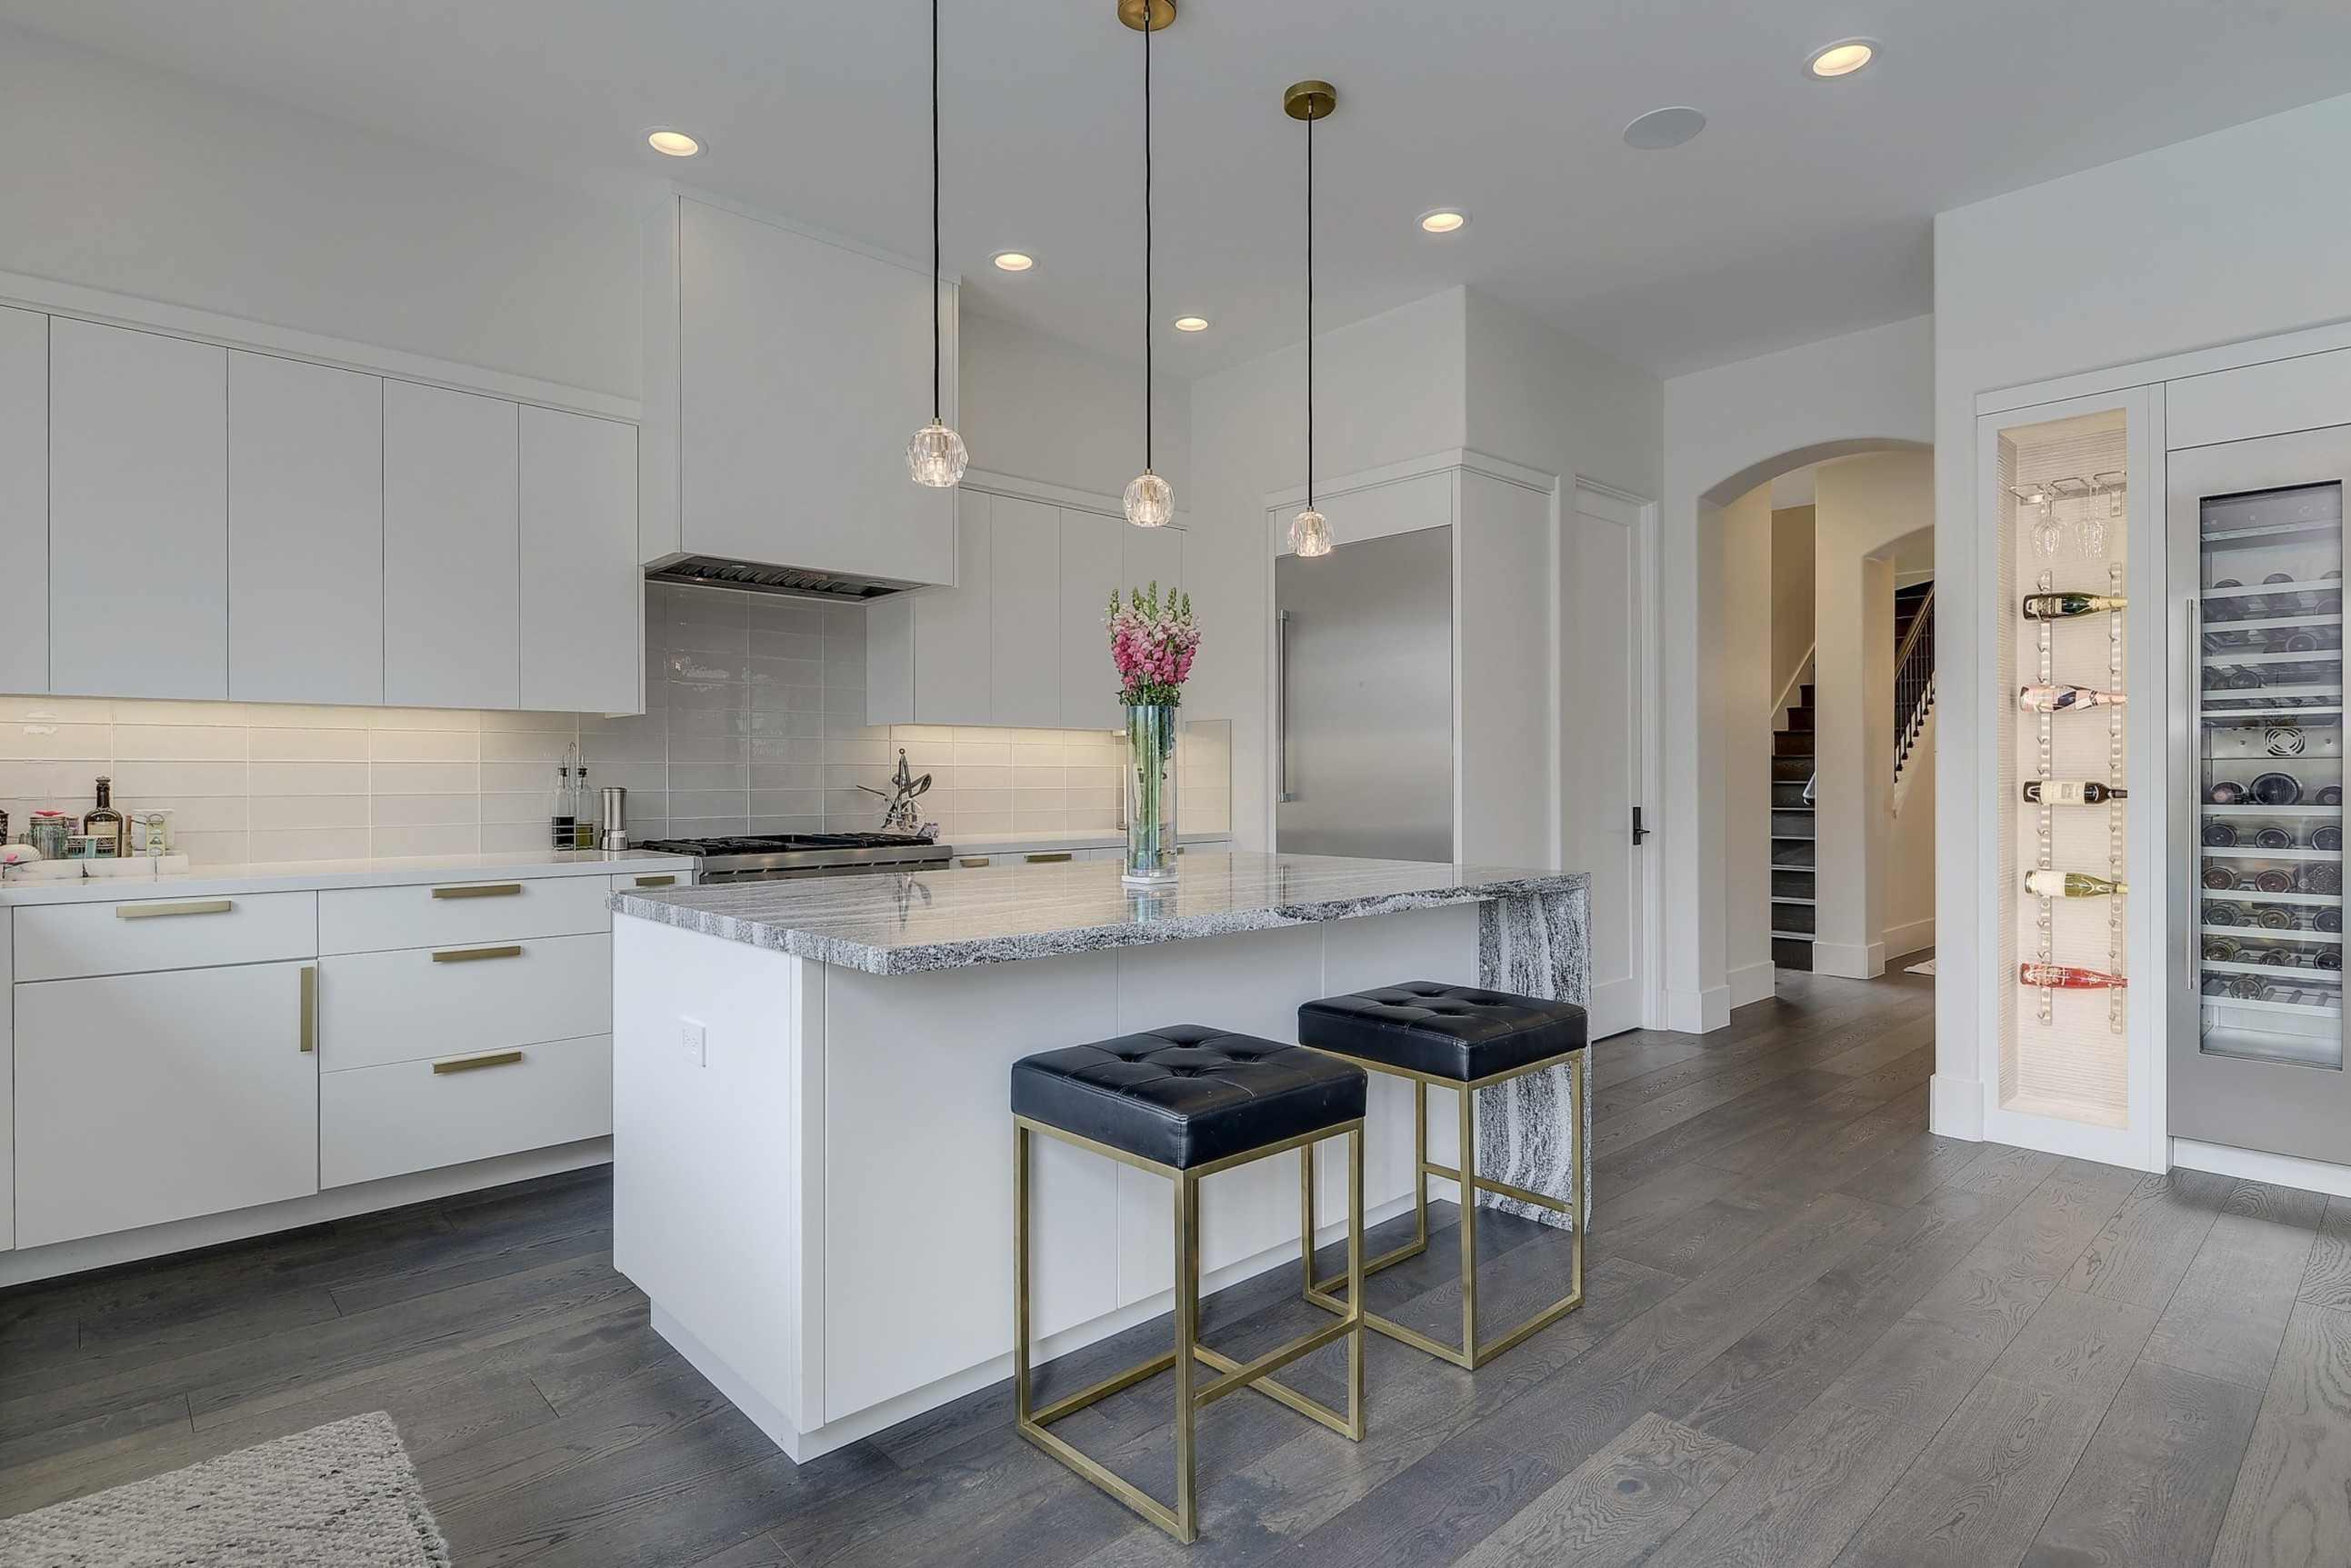 Aspen Luxury Interiors image 6